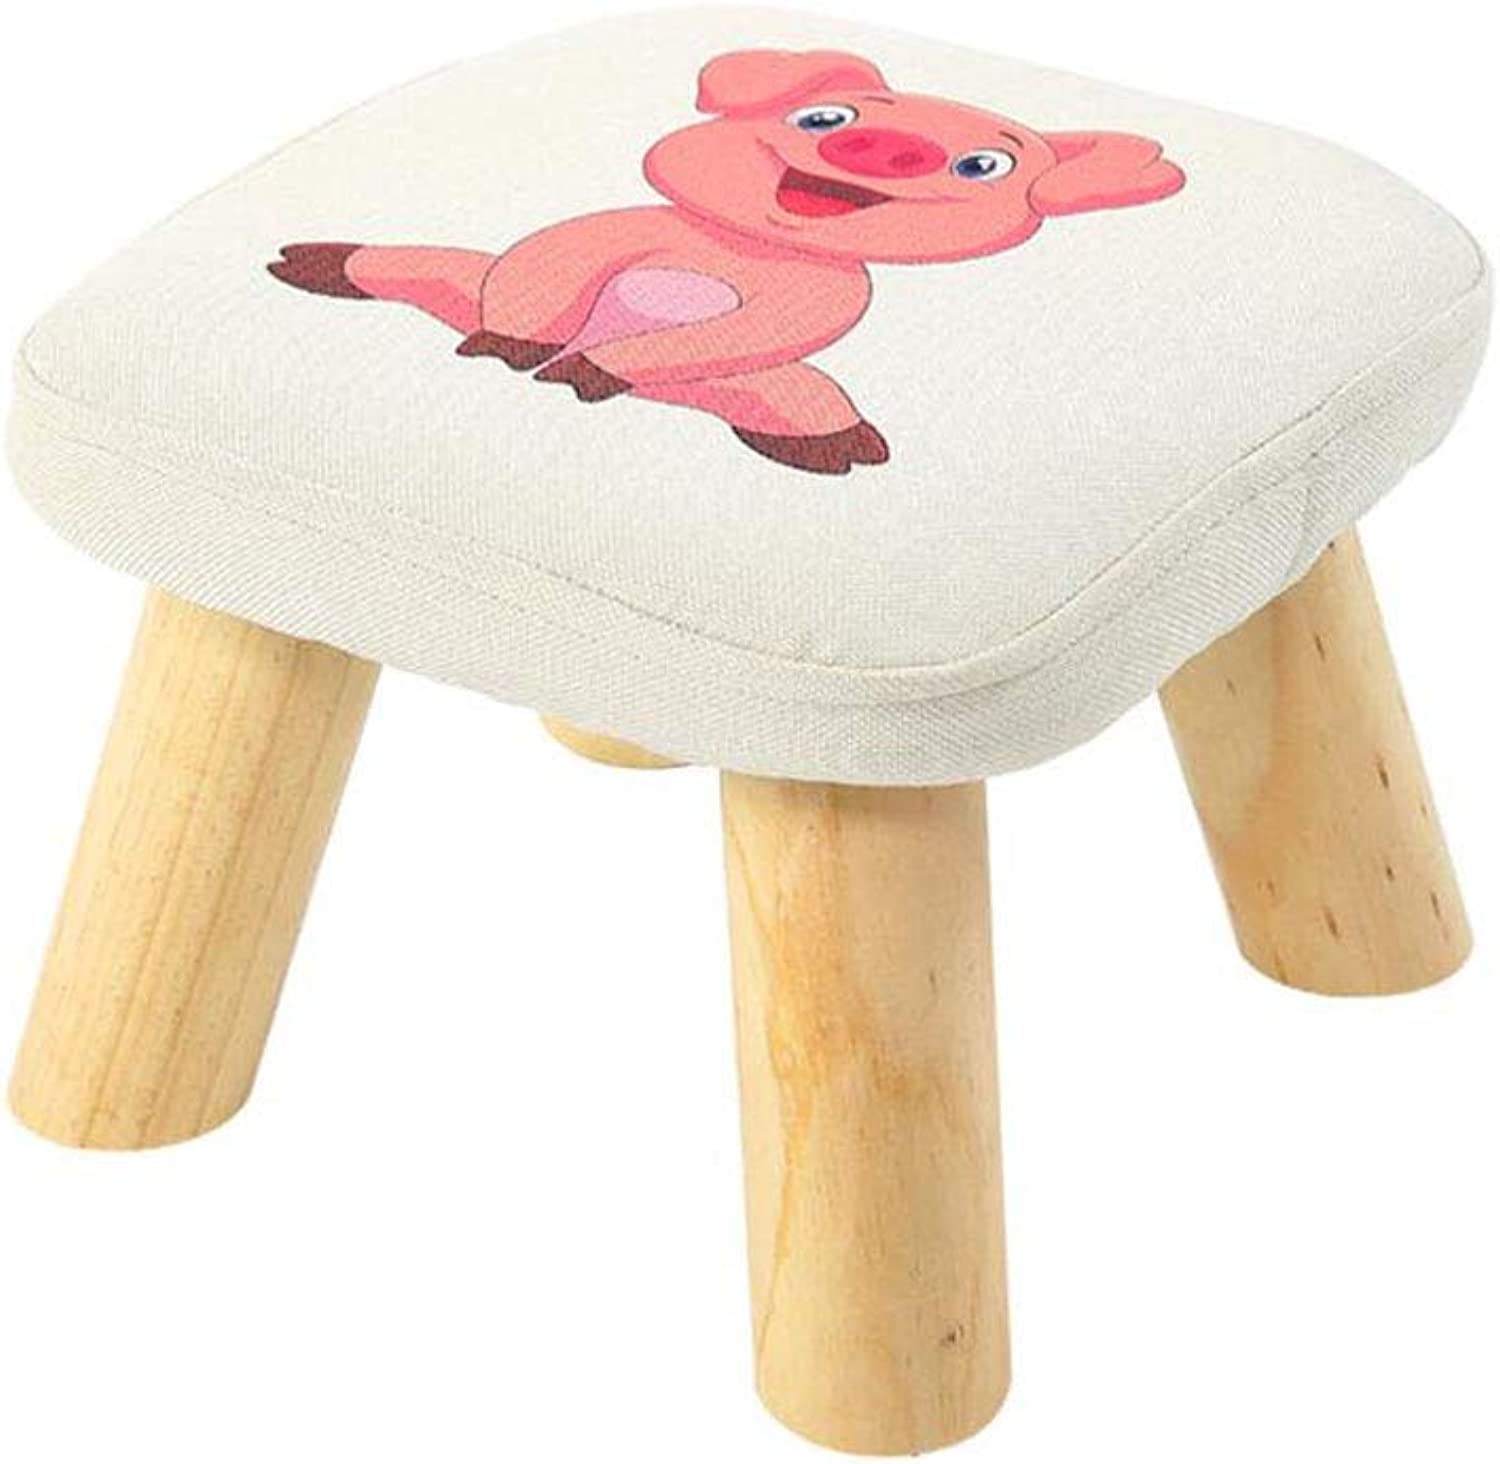 CJC Stool Wood Support Upholstered Footstool Chair Removable Linen Cove Home Office Furniture Kitchen (color   T11)